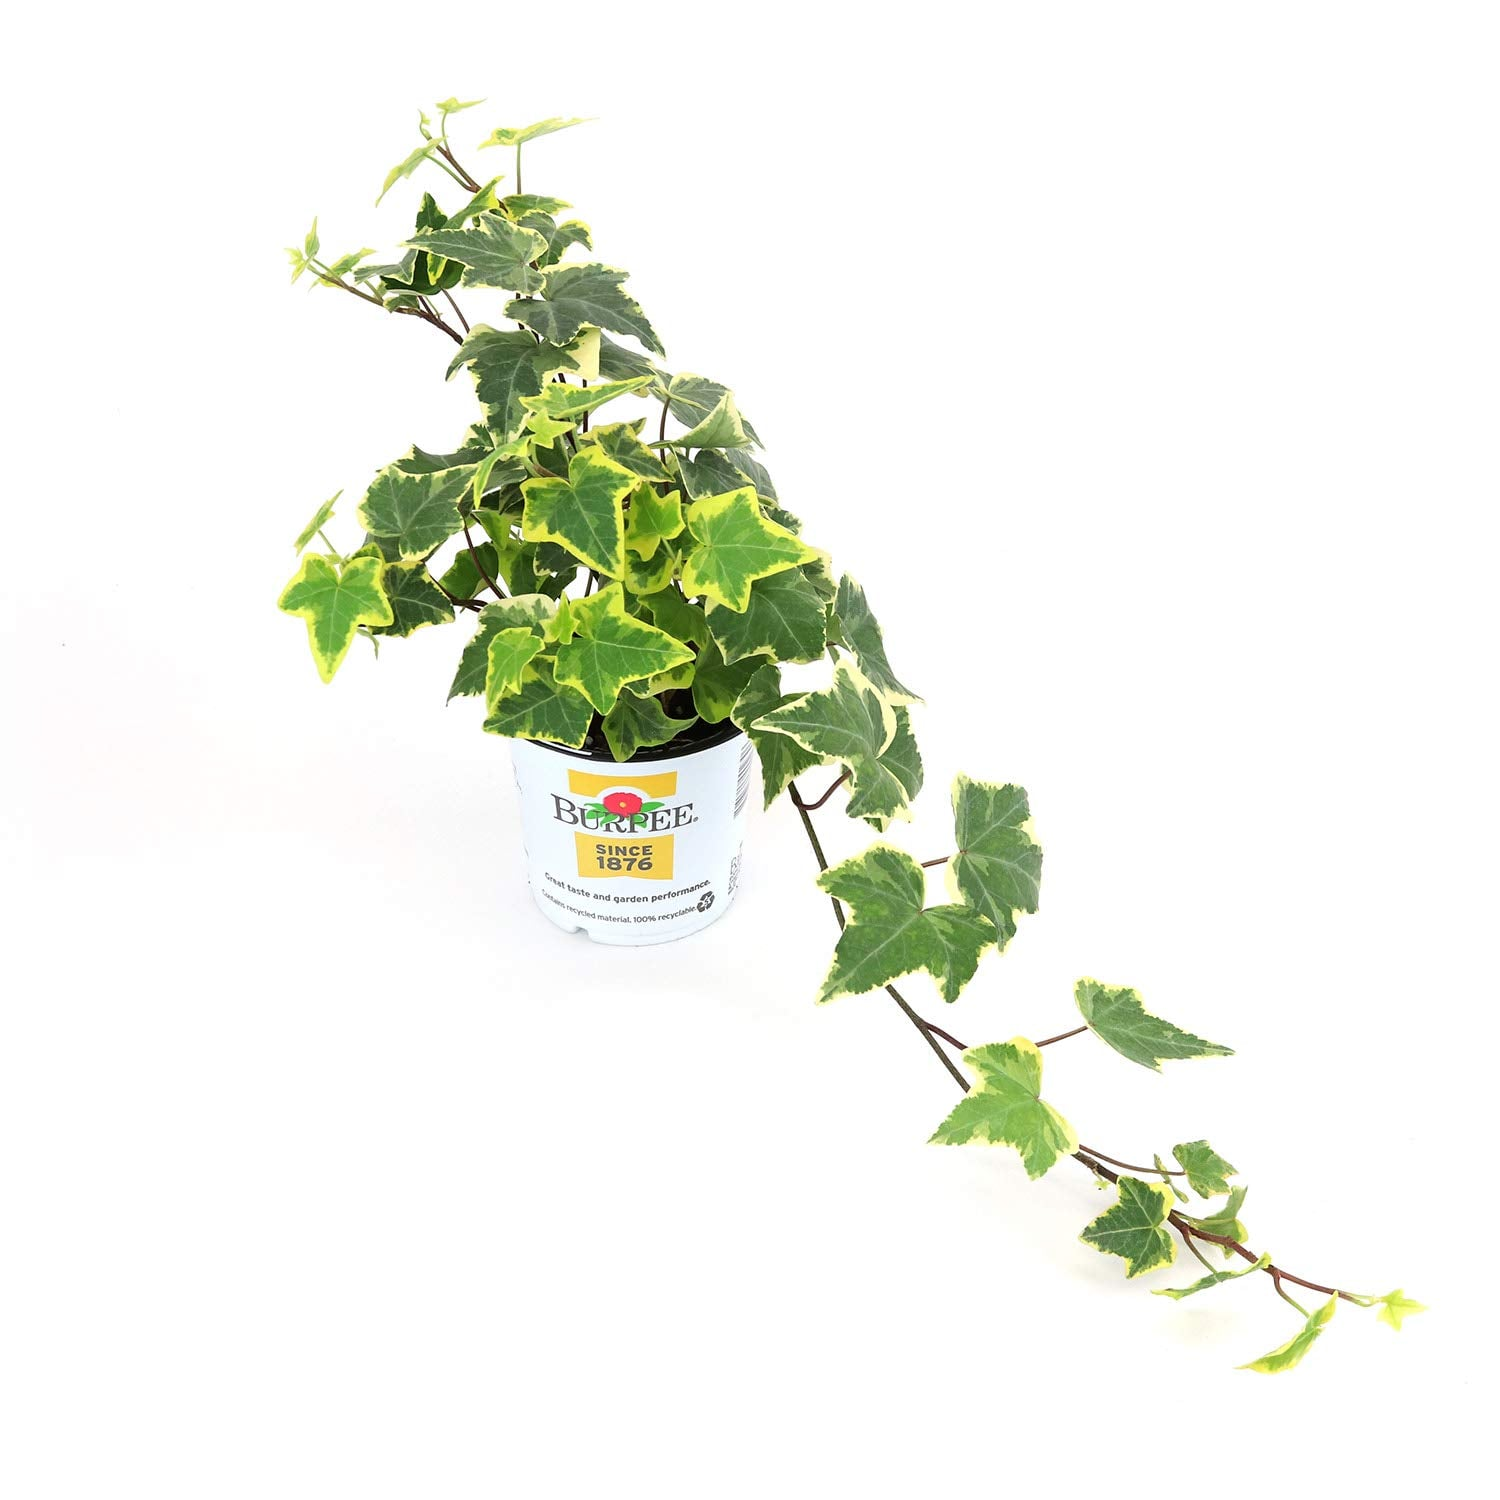 Ivy in Variegated Gold | 50 Hanging Plants That Will ... Greenhouse Plant Ivy on how grow zinnia plants, bayou plants, farm plants, cartoon fern plants, potted plants, indoor plants, watering plants, tomatoes plants, fertilizing plants, pepper plants, sci-fi plants, nursery plants, annuals plants, water plants, history plants, tropical plants, horticulture plants, landscaping plants, pruning plants, green plants,